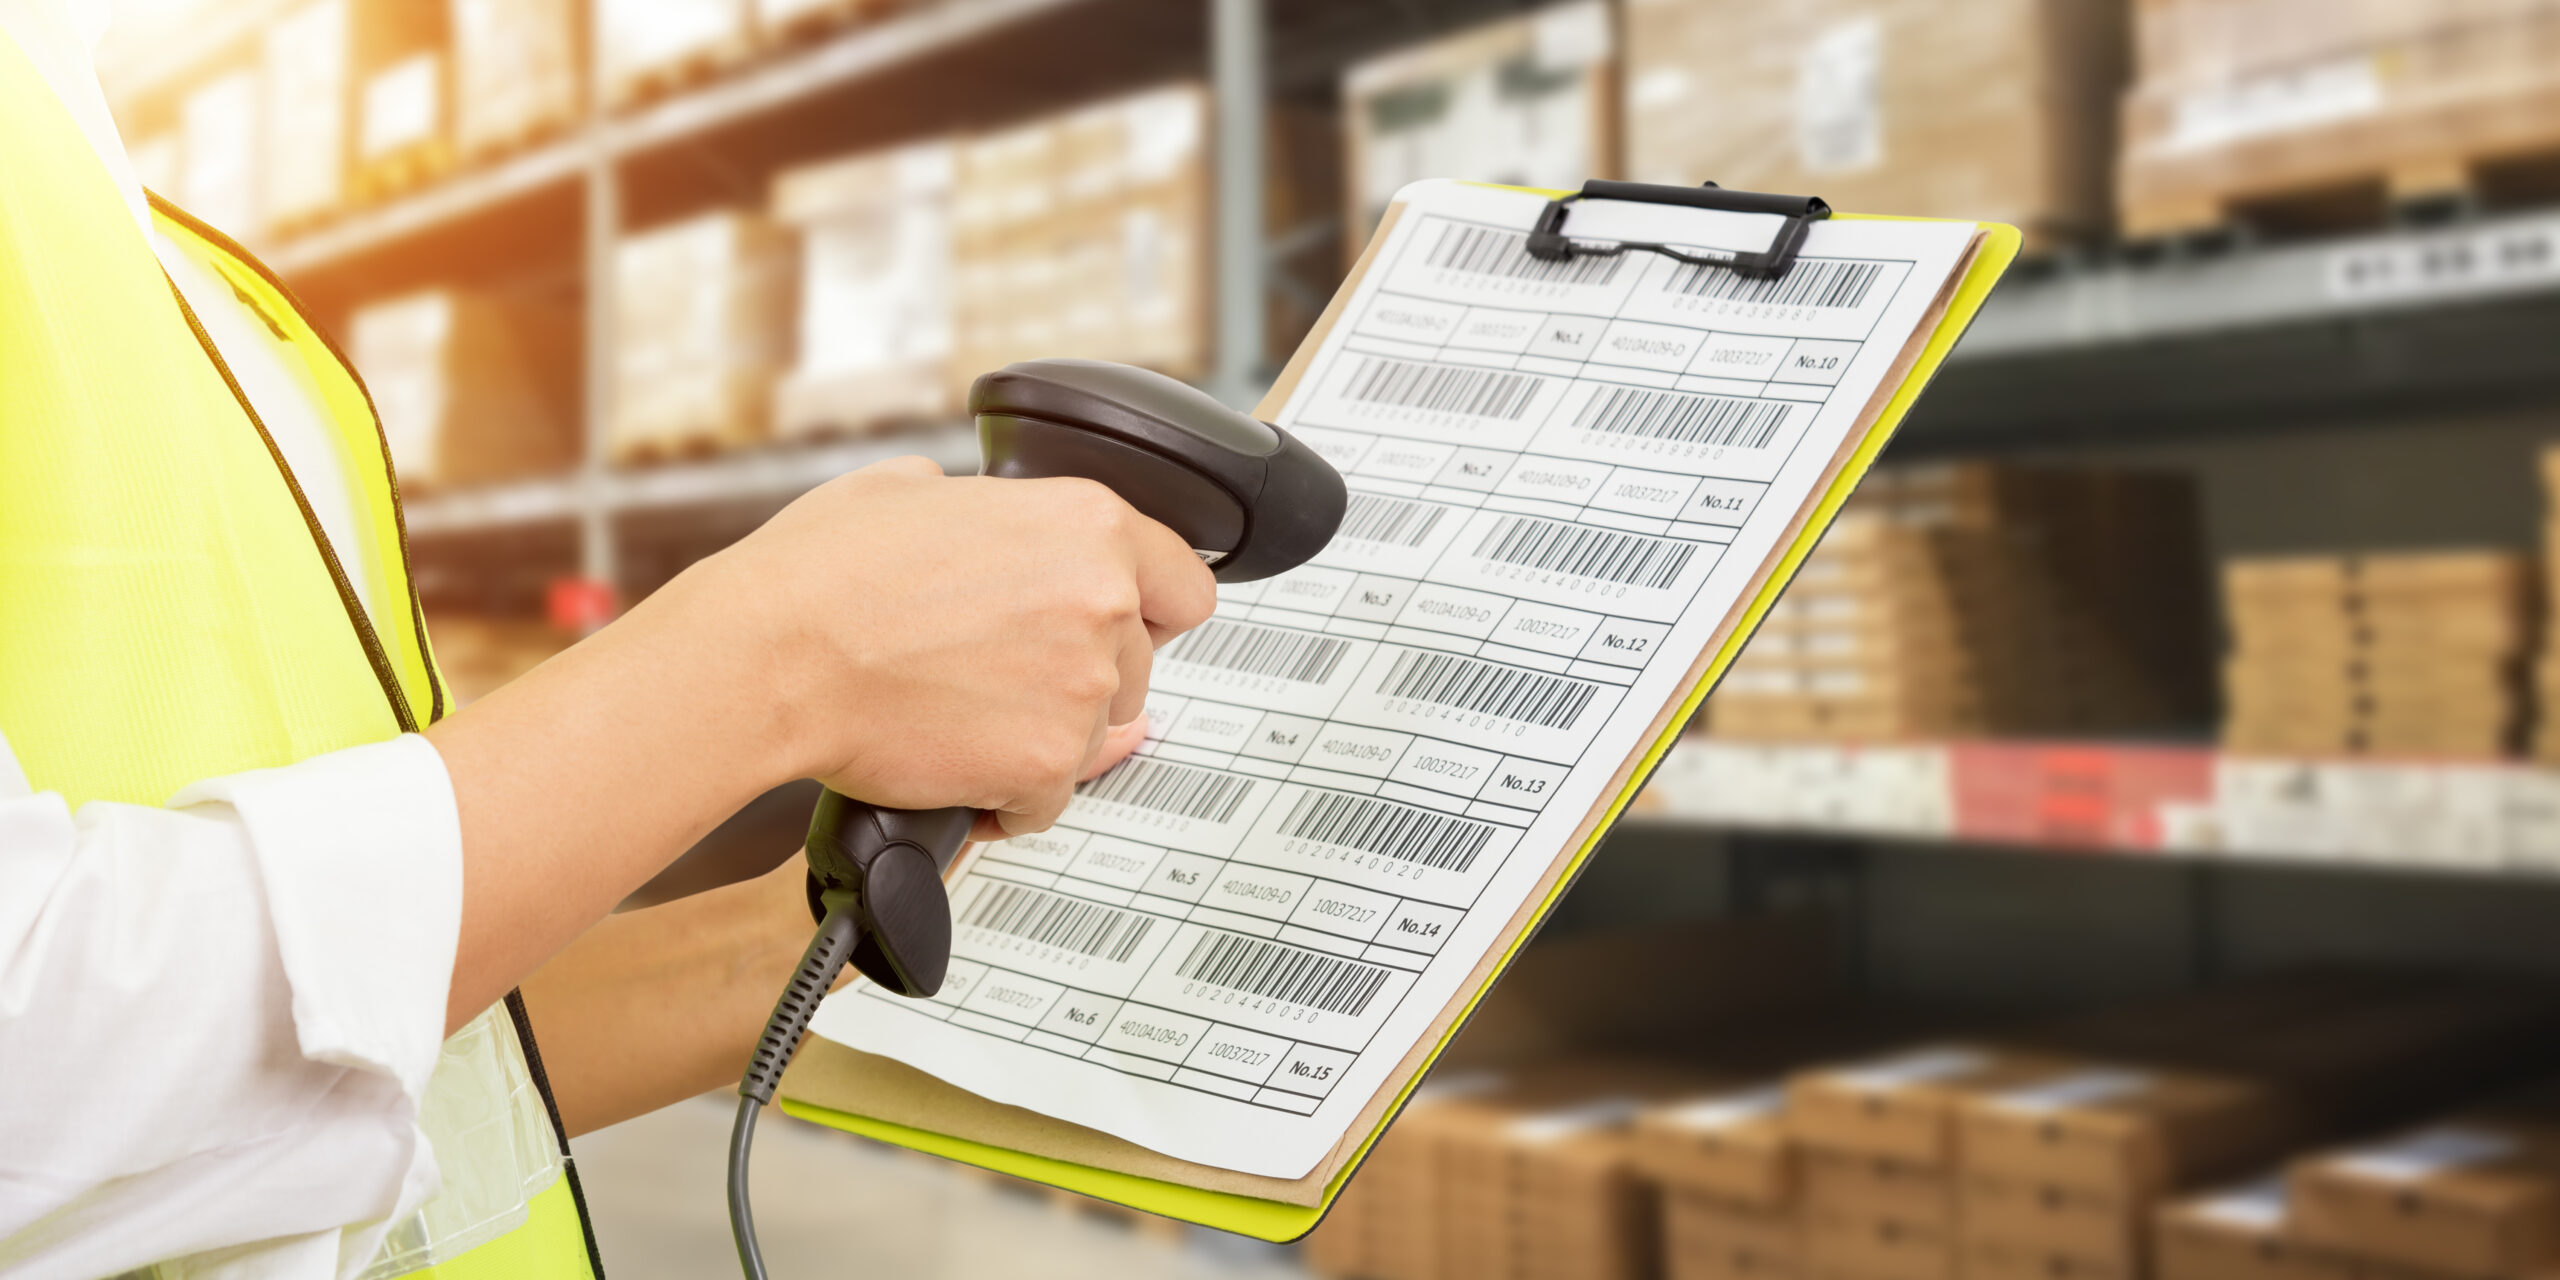 how-barcodes-are-read